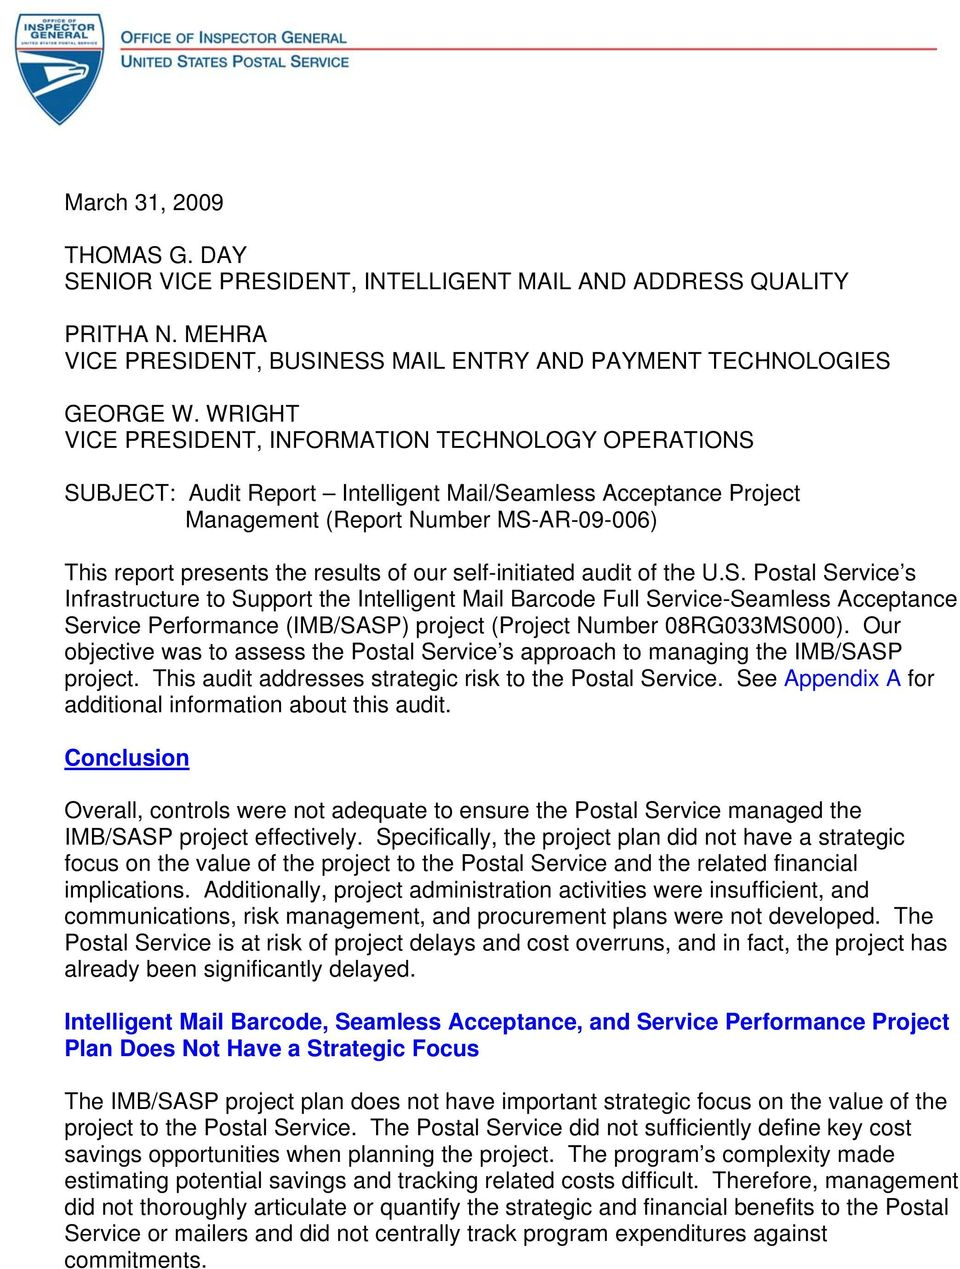 audit of the U.S. Postal Service s Infrastructure to Support the Intelligent Mail Barcode Full Service-Seamless Acceptance Service Performance (IMB/SASP) project (Project Number 08RG033MS000).